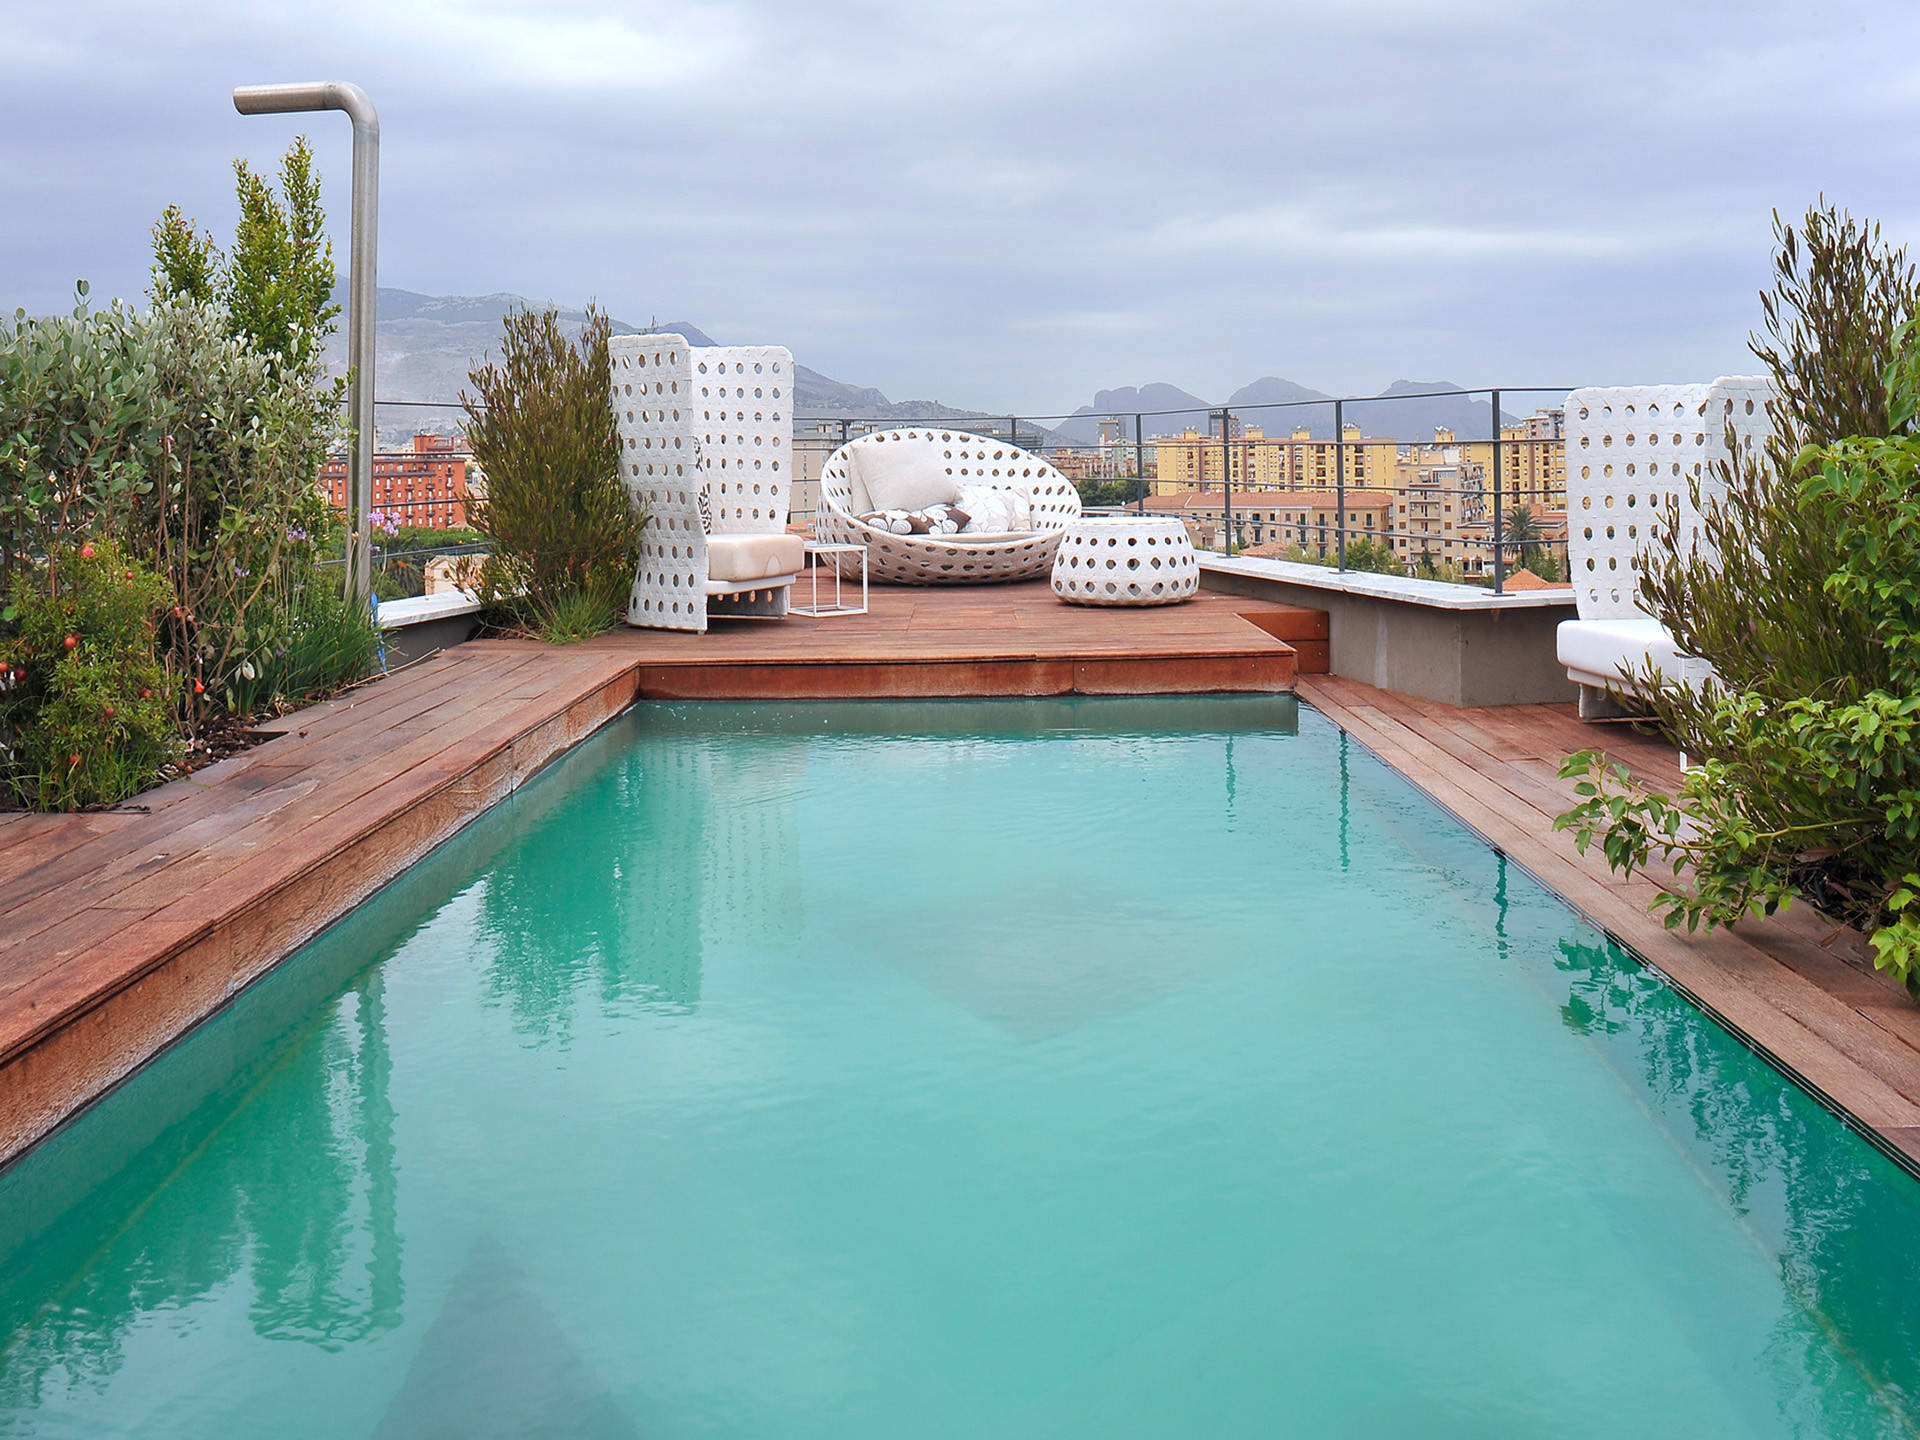 18 Stupendous Industrial Swimming Pool Designs